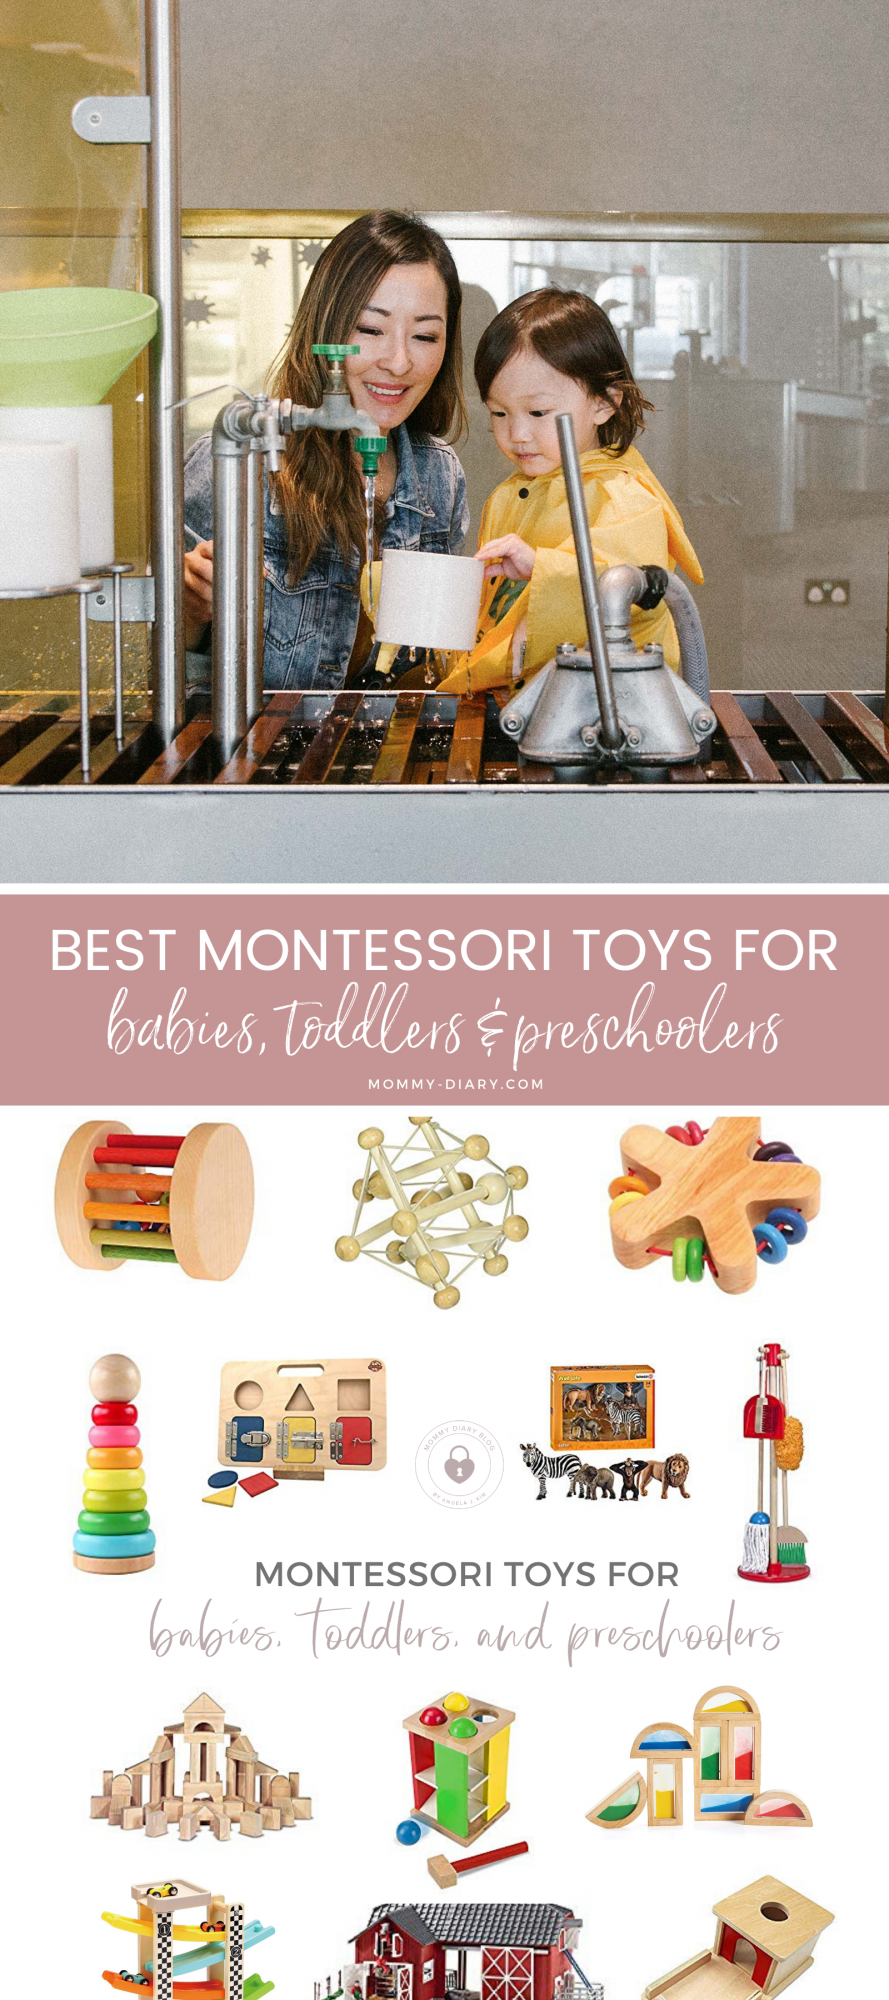 best-montessori-toys-babies-toddlers-preschool